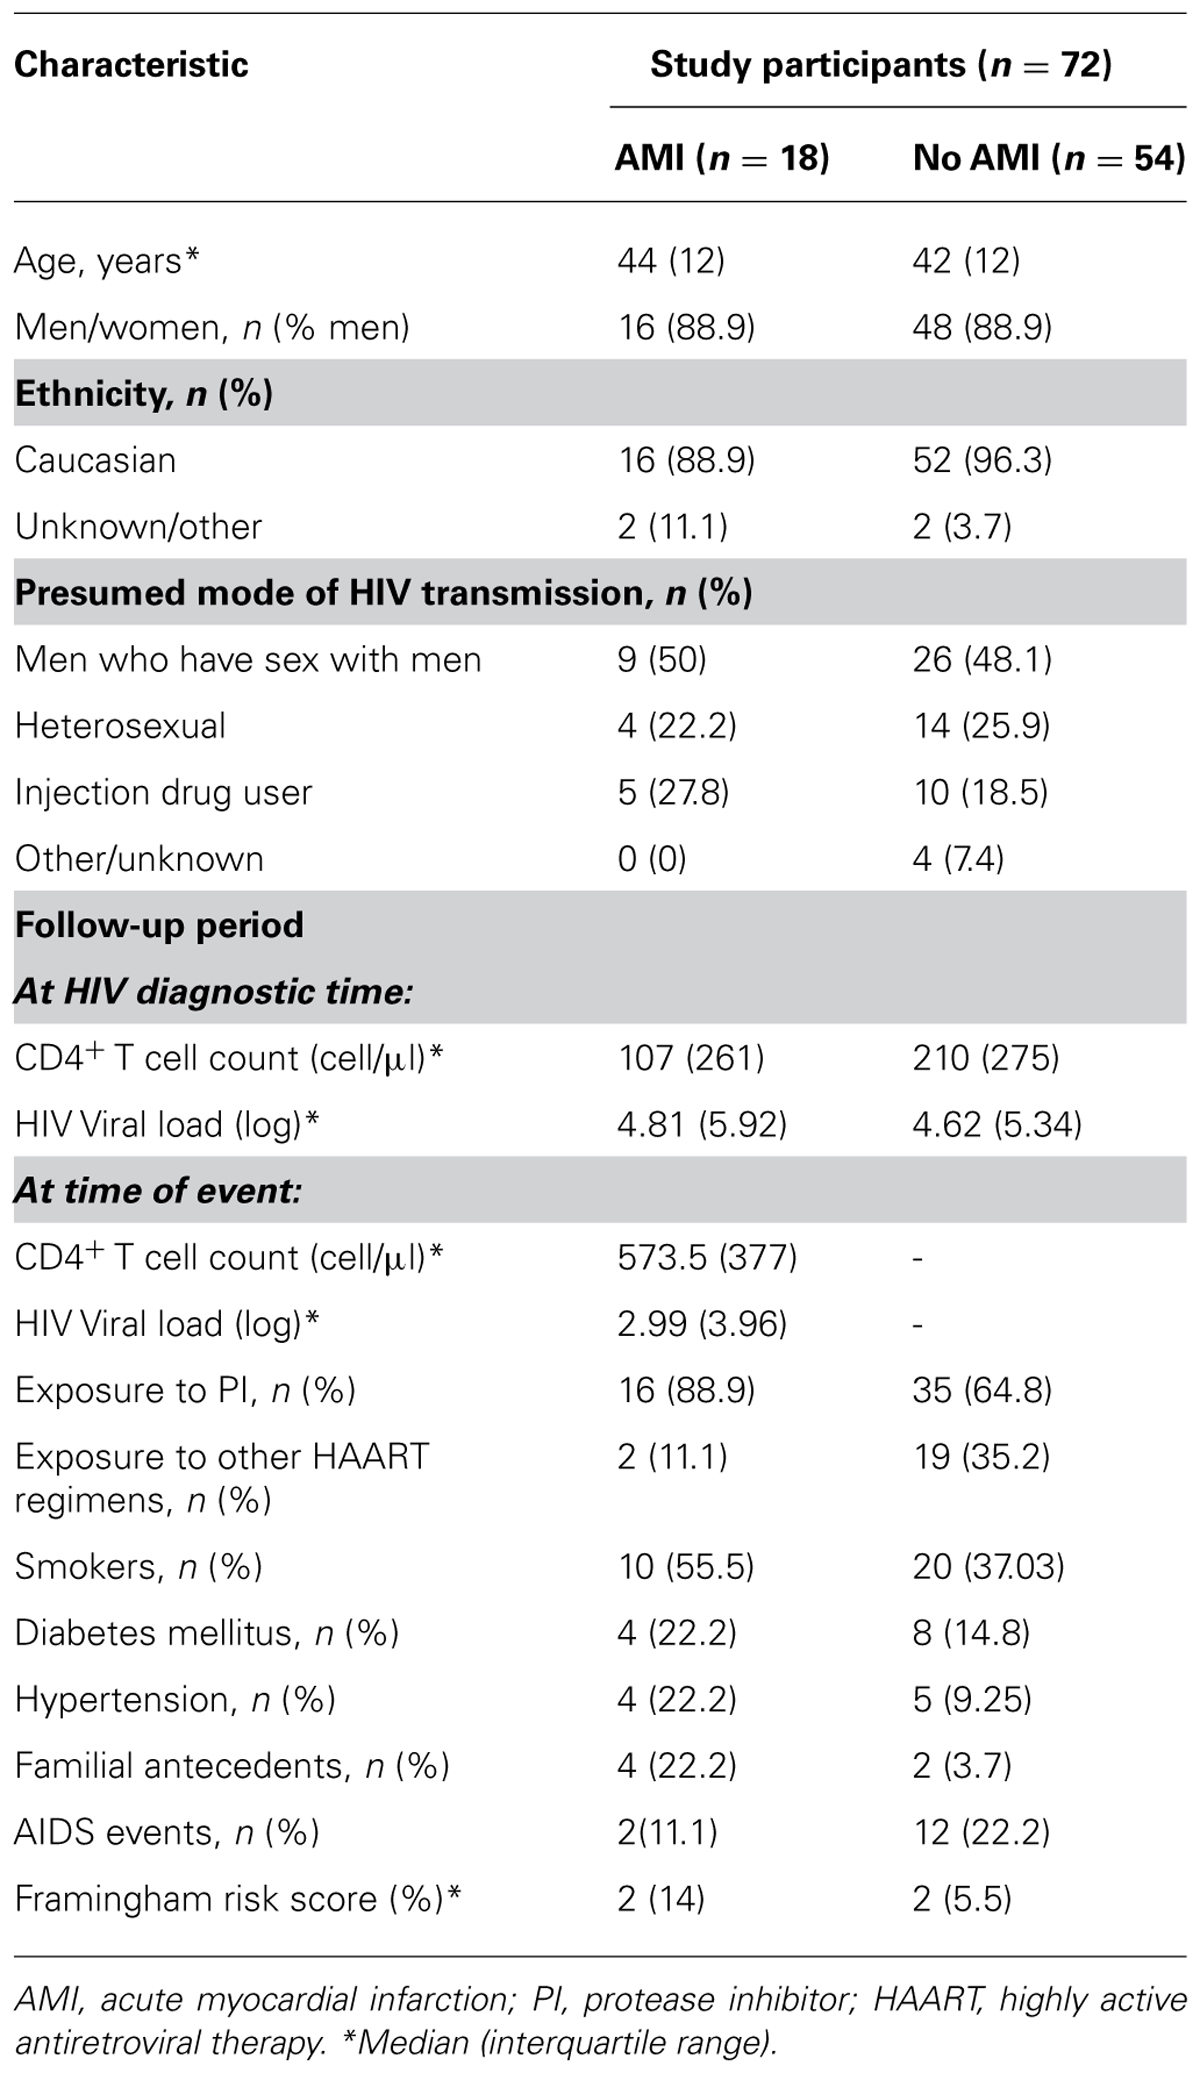 an analysis of the awareness characteristics and dangers of aids Young people may also belong to other key affected populations such as sex workers, men  the impact of alienation from family35 young people within key populations often have lower knowledge of hiv risks,  systematic review and meta-analysis', aids journal 110 lamb, mr et al (2014) 'high attrition before and after art initiation.